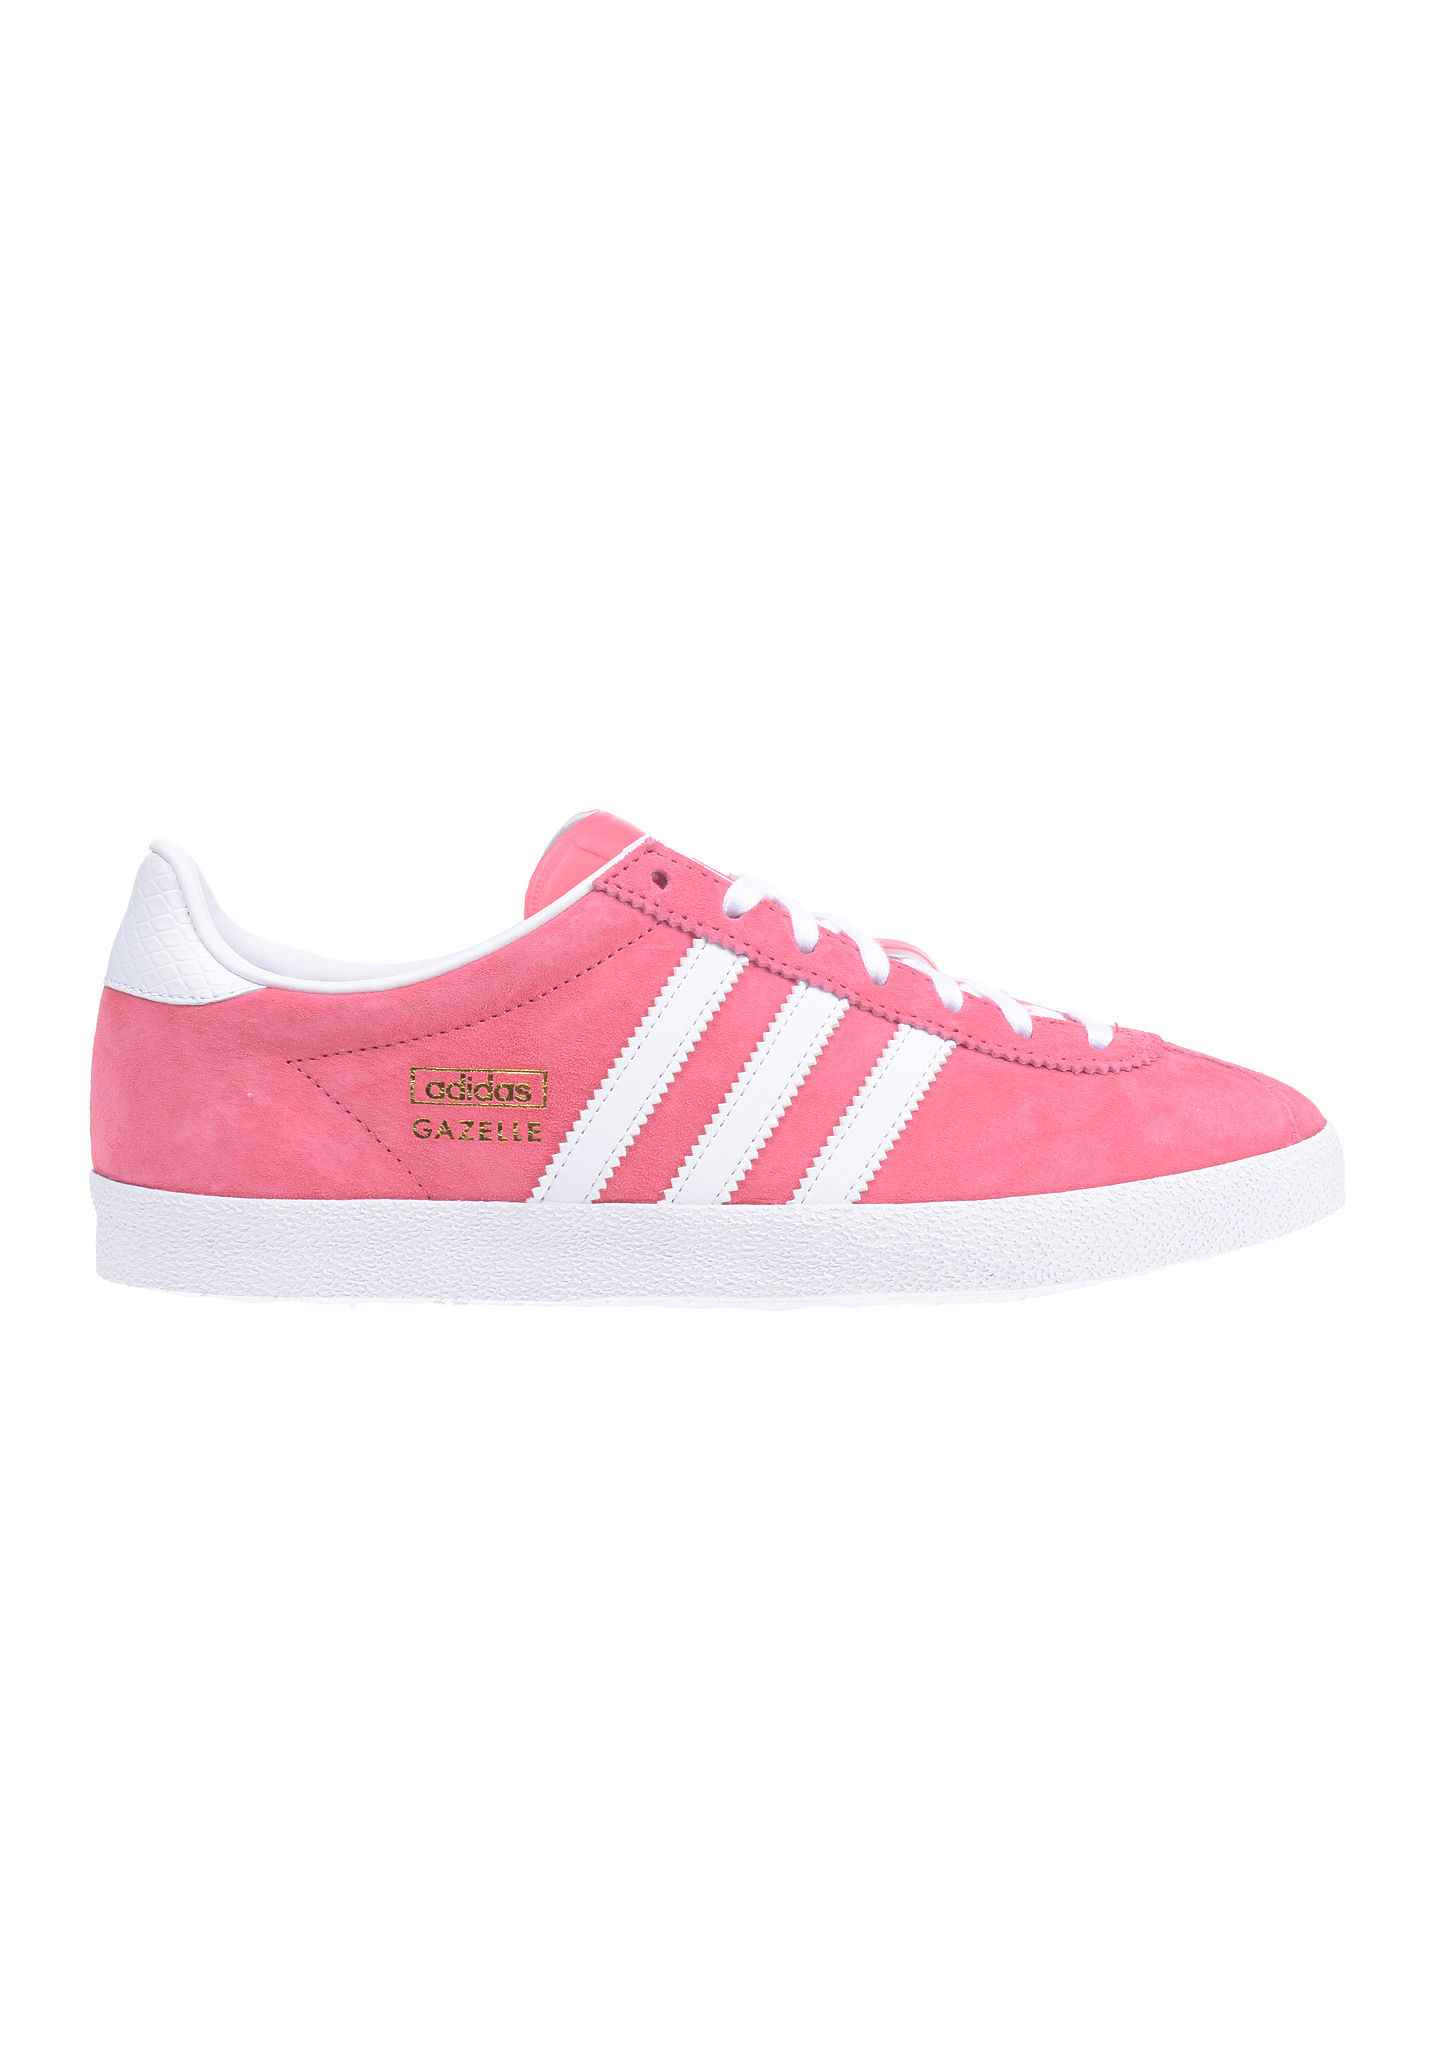 new concept 9f5be 330d7 Mujeres Sports Adidas Planet Para Zapatillas Og Rosa Gazelle